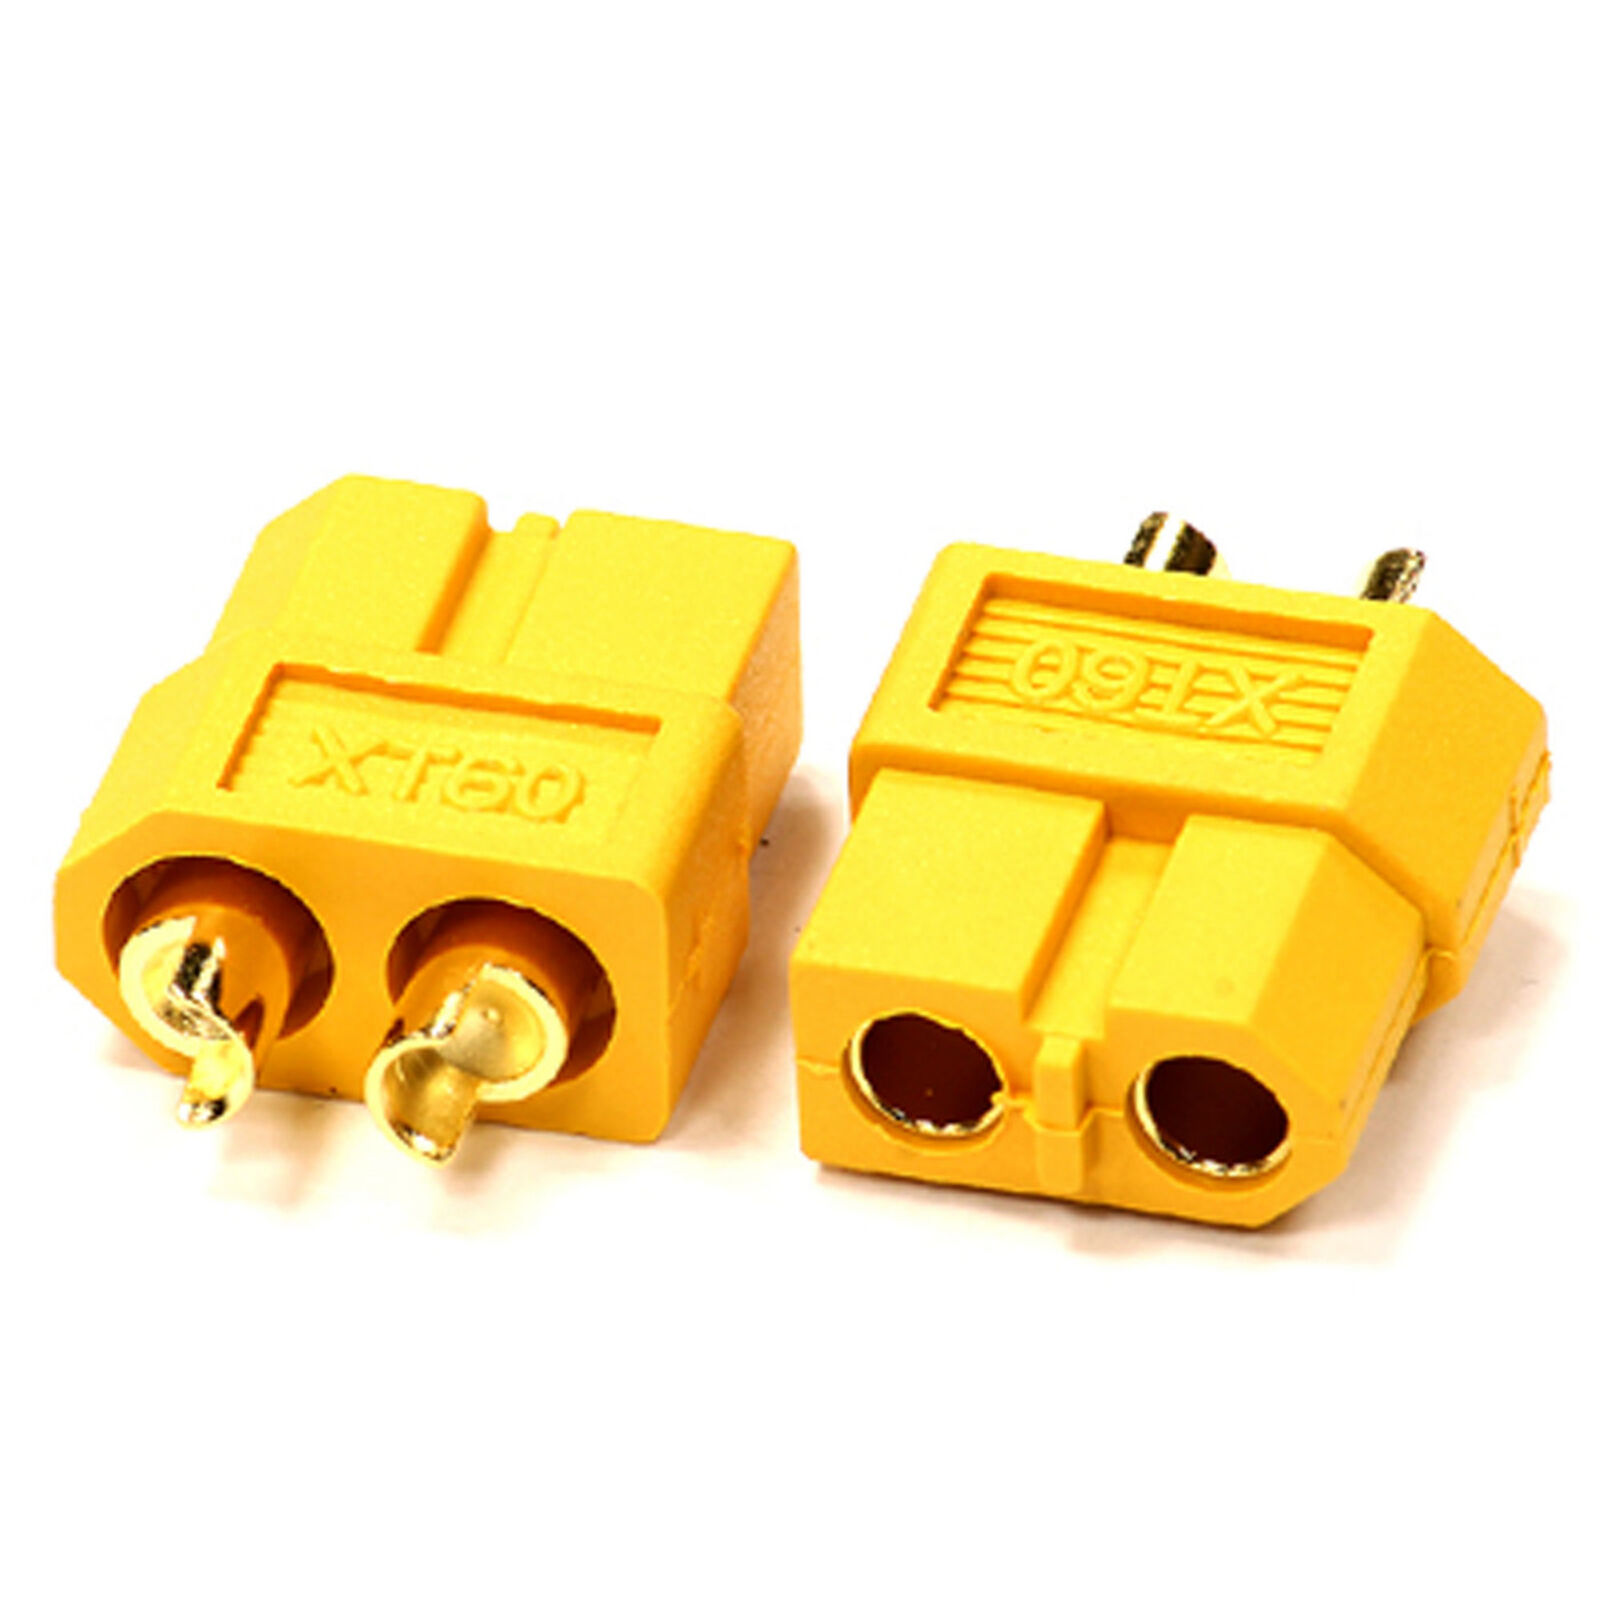 Connector: XT60 Female, 3.5mm (2)